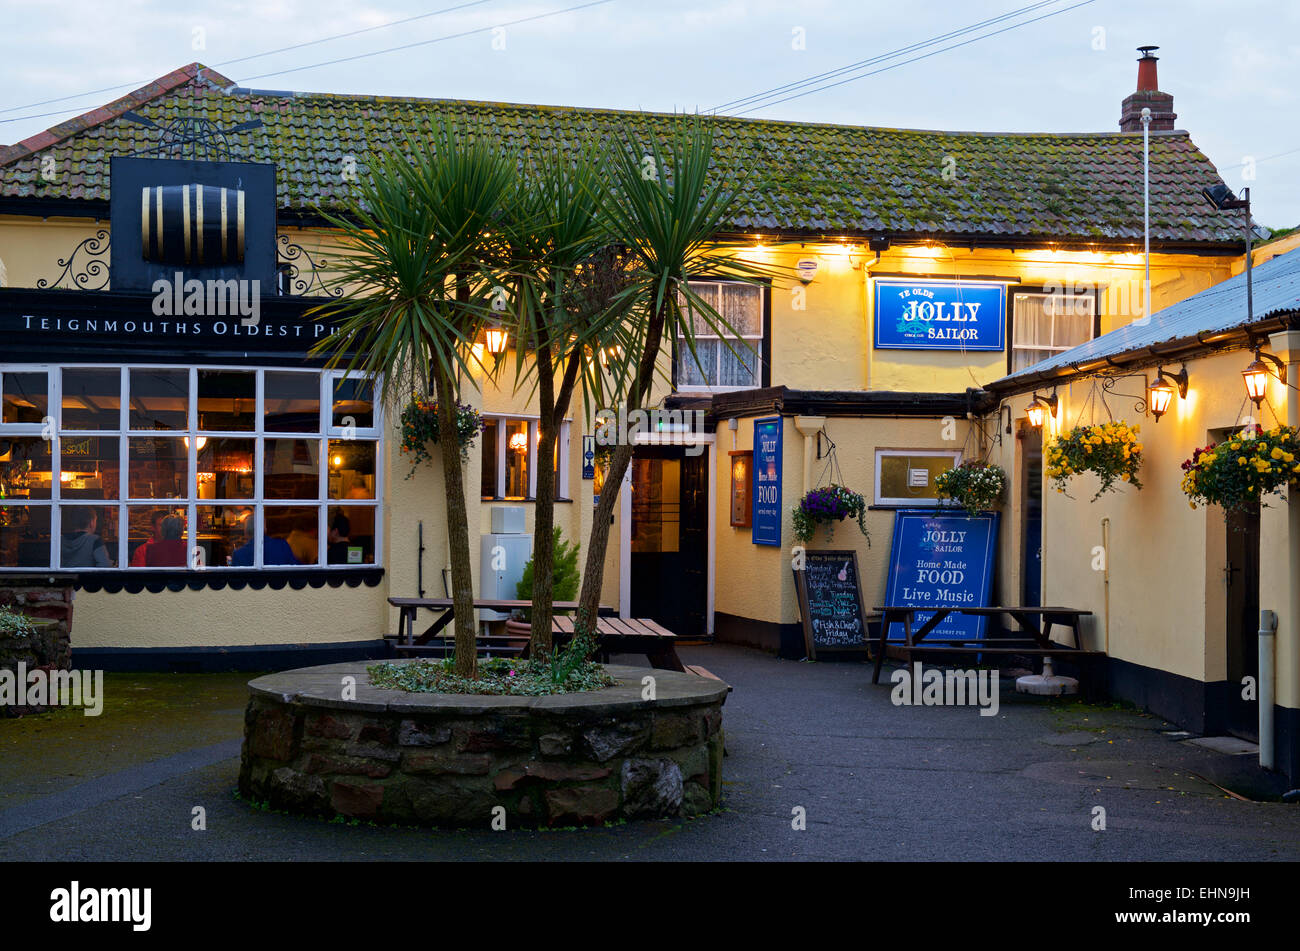 Le Jolly Sailor pub à Teignmouth, Devon, Angleterre, Royaume-Uni Photo Stock